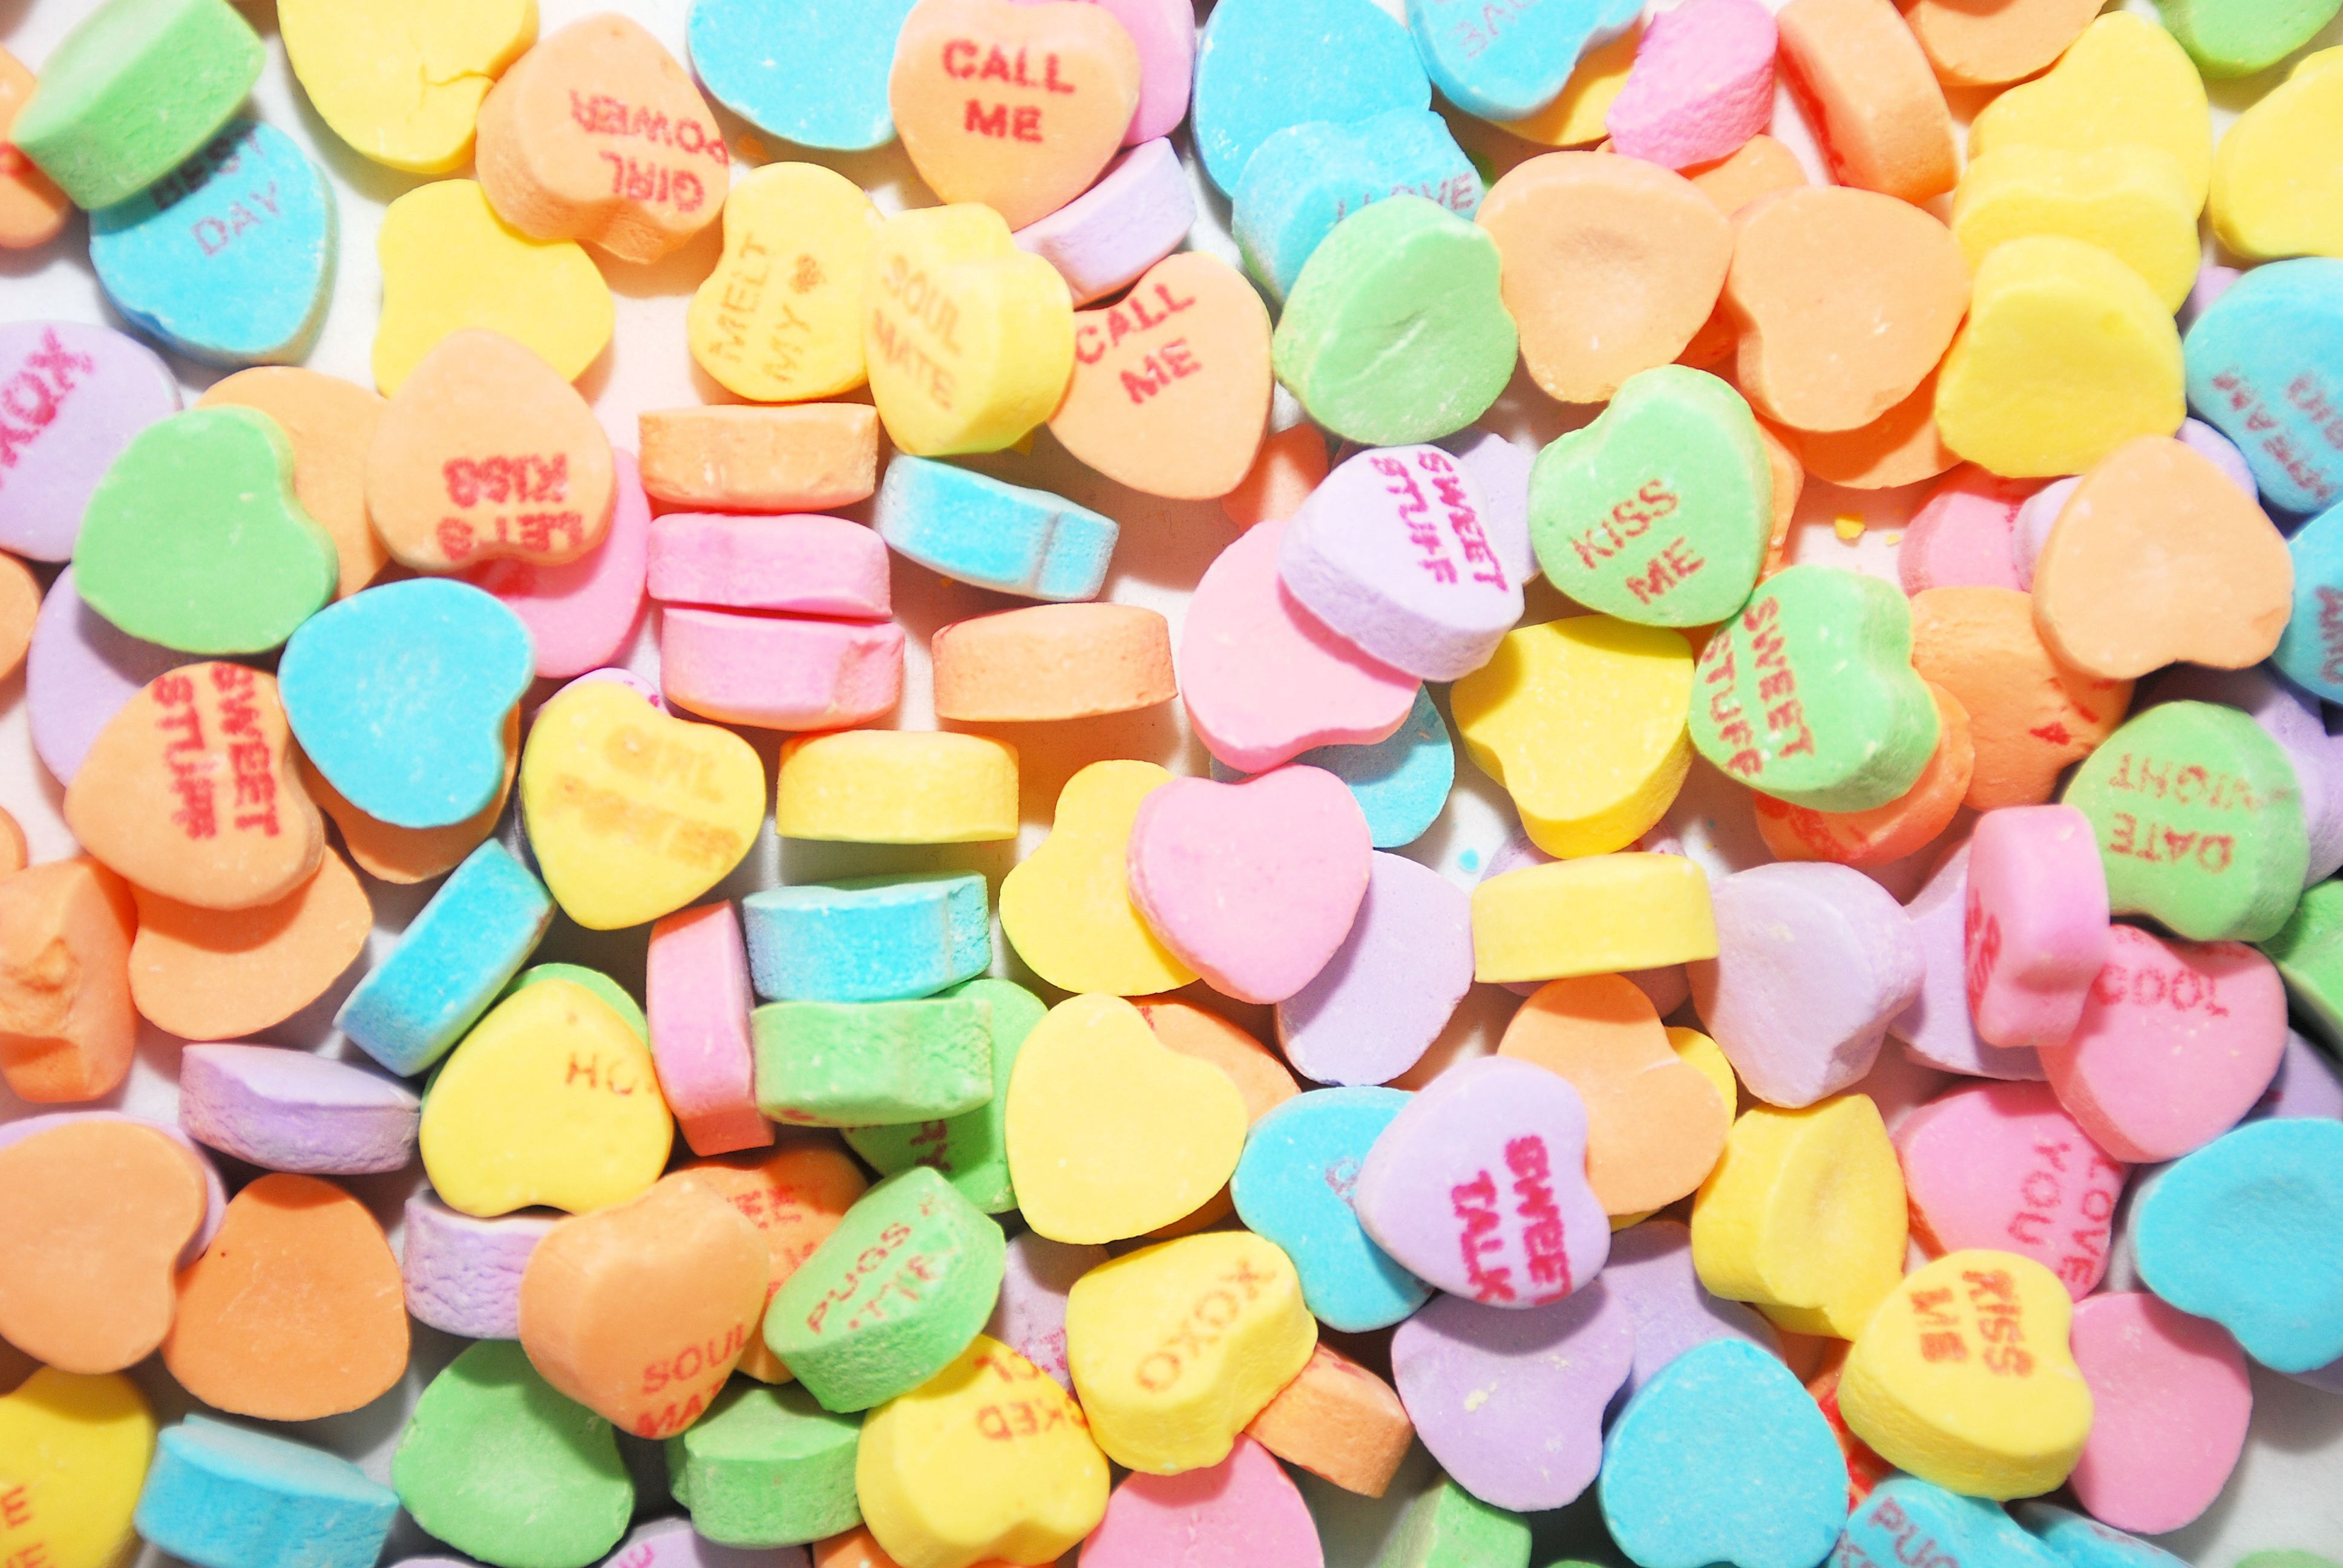 Conversation heart background, great for Valentine's Day projects